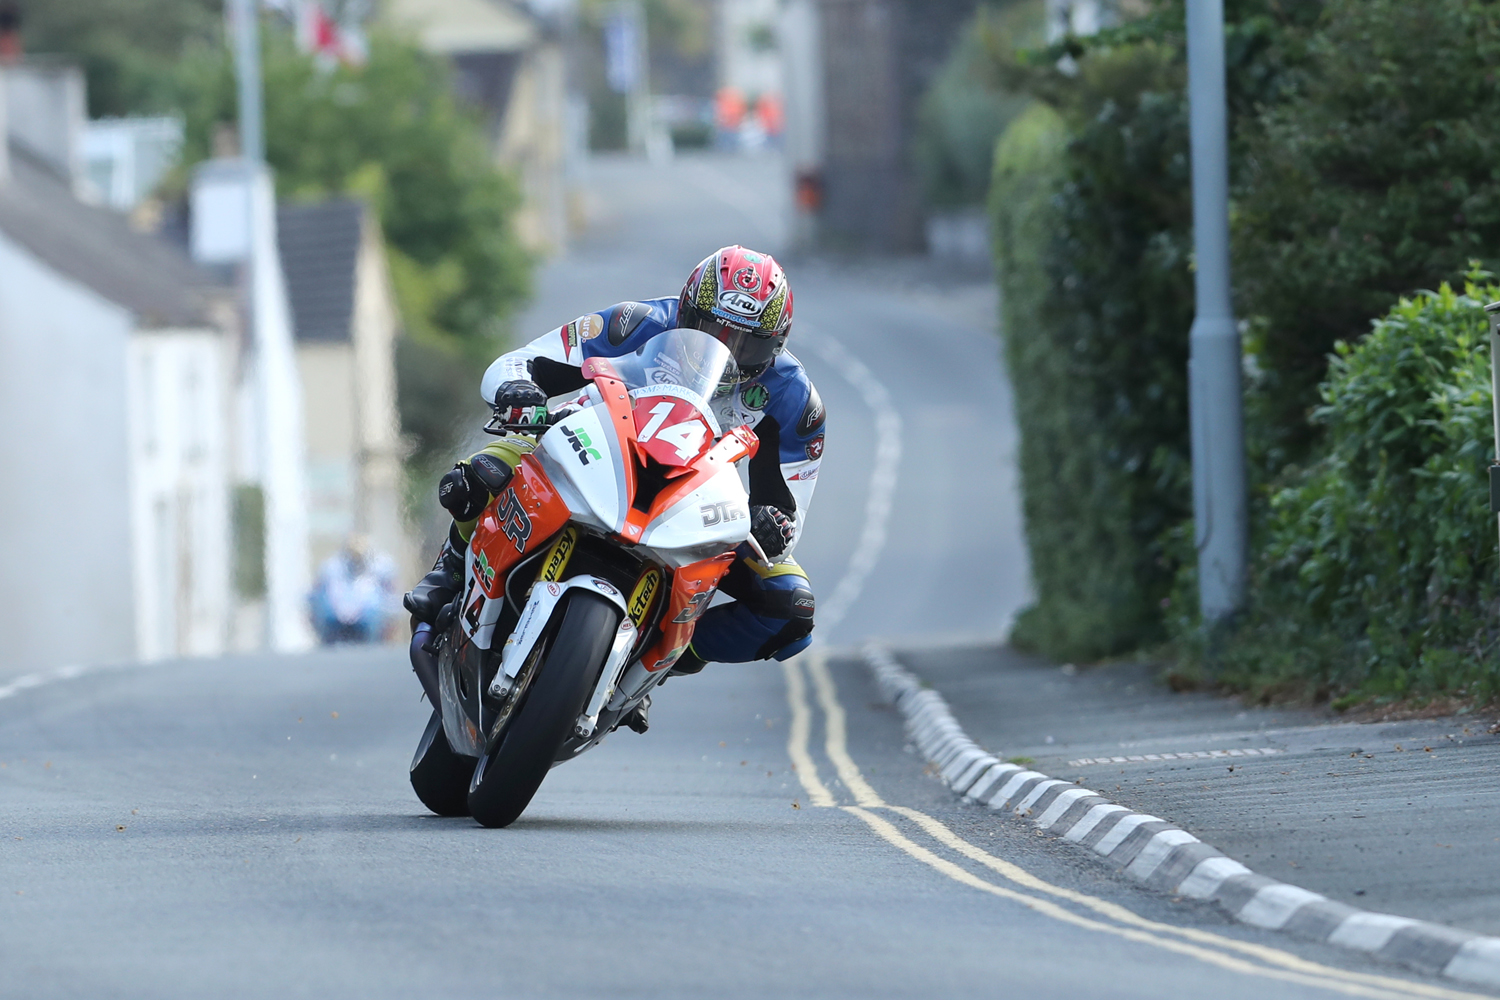 31/05/2017: Dan Kneen (BMW/DTR powered by Penz 13) through the village of Kirk Michael during qualifying for the Isle of Man TT. PICTURE BY DAVE KNEEN/PACEMAKER PRESS.